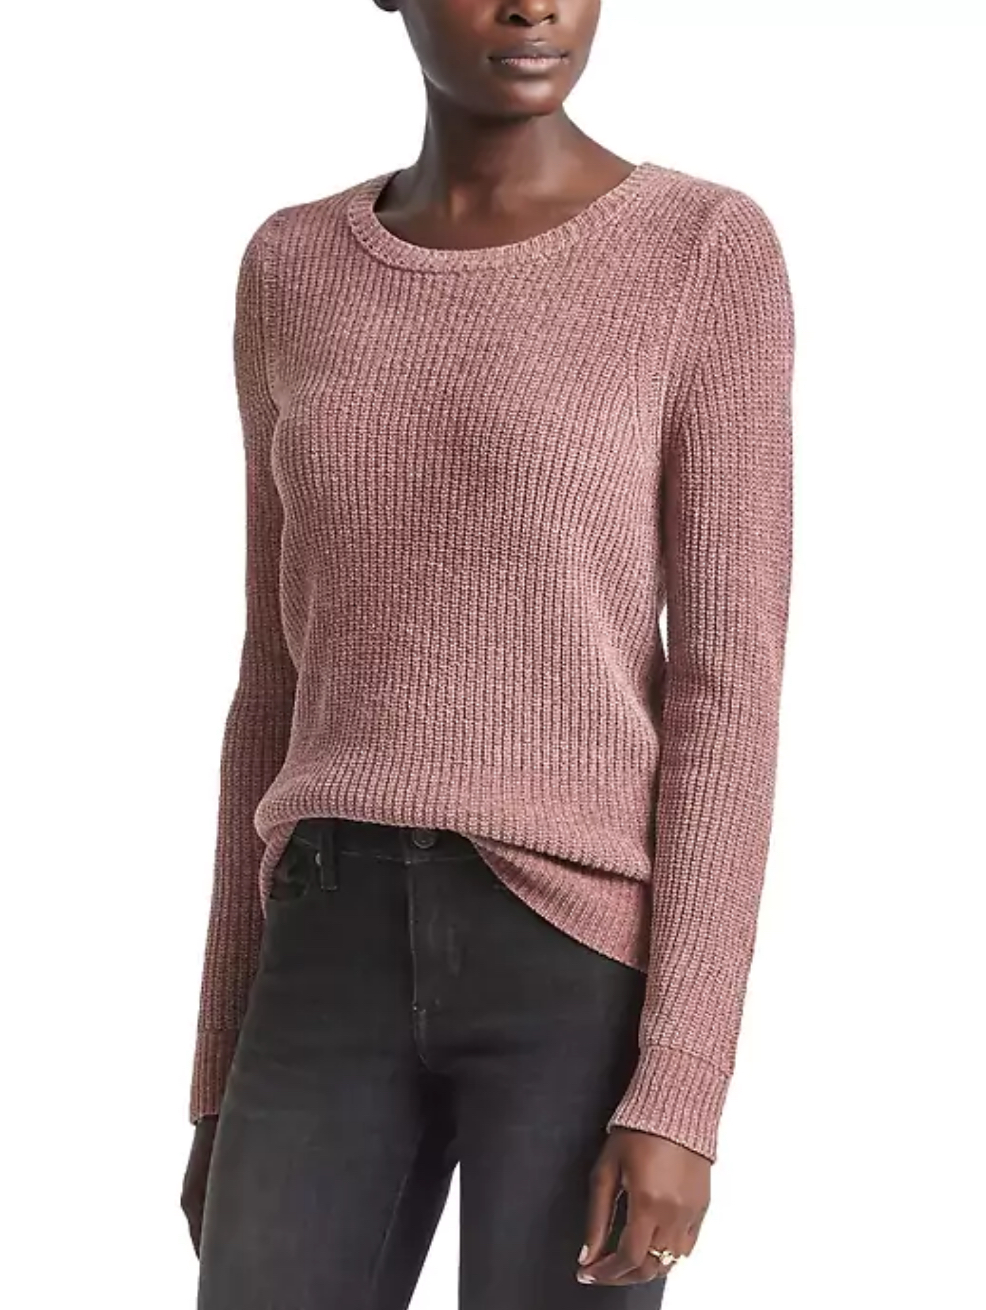 tanger outlets banana republic pink colored sweater